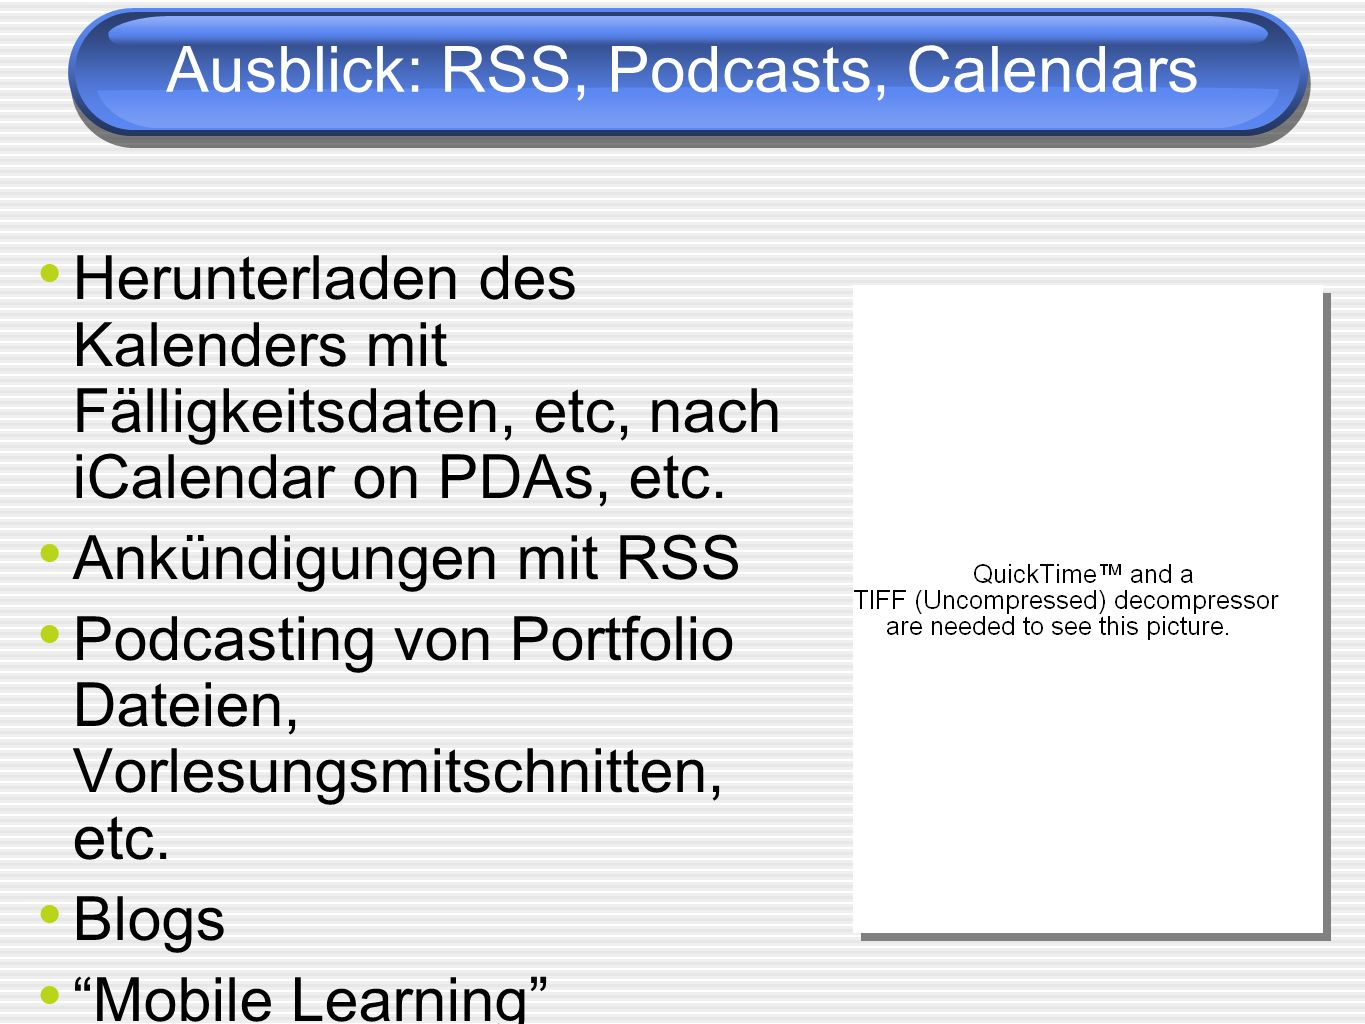 Ausblick: RSS, Podcasts, Calendars